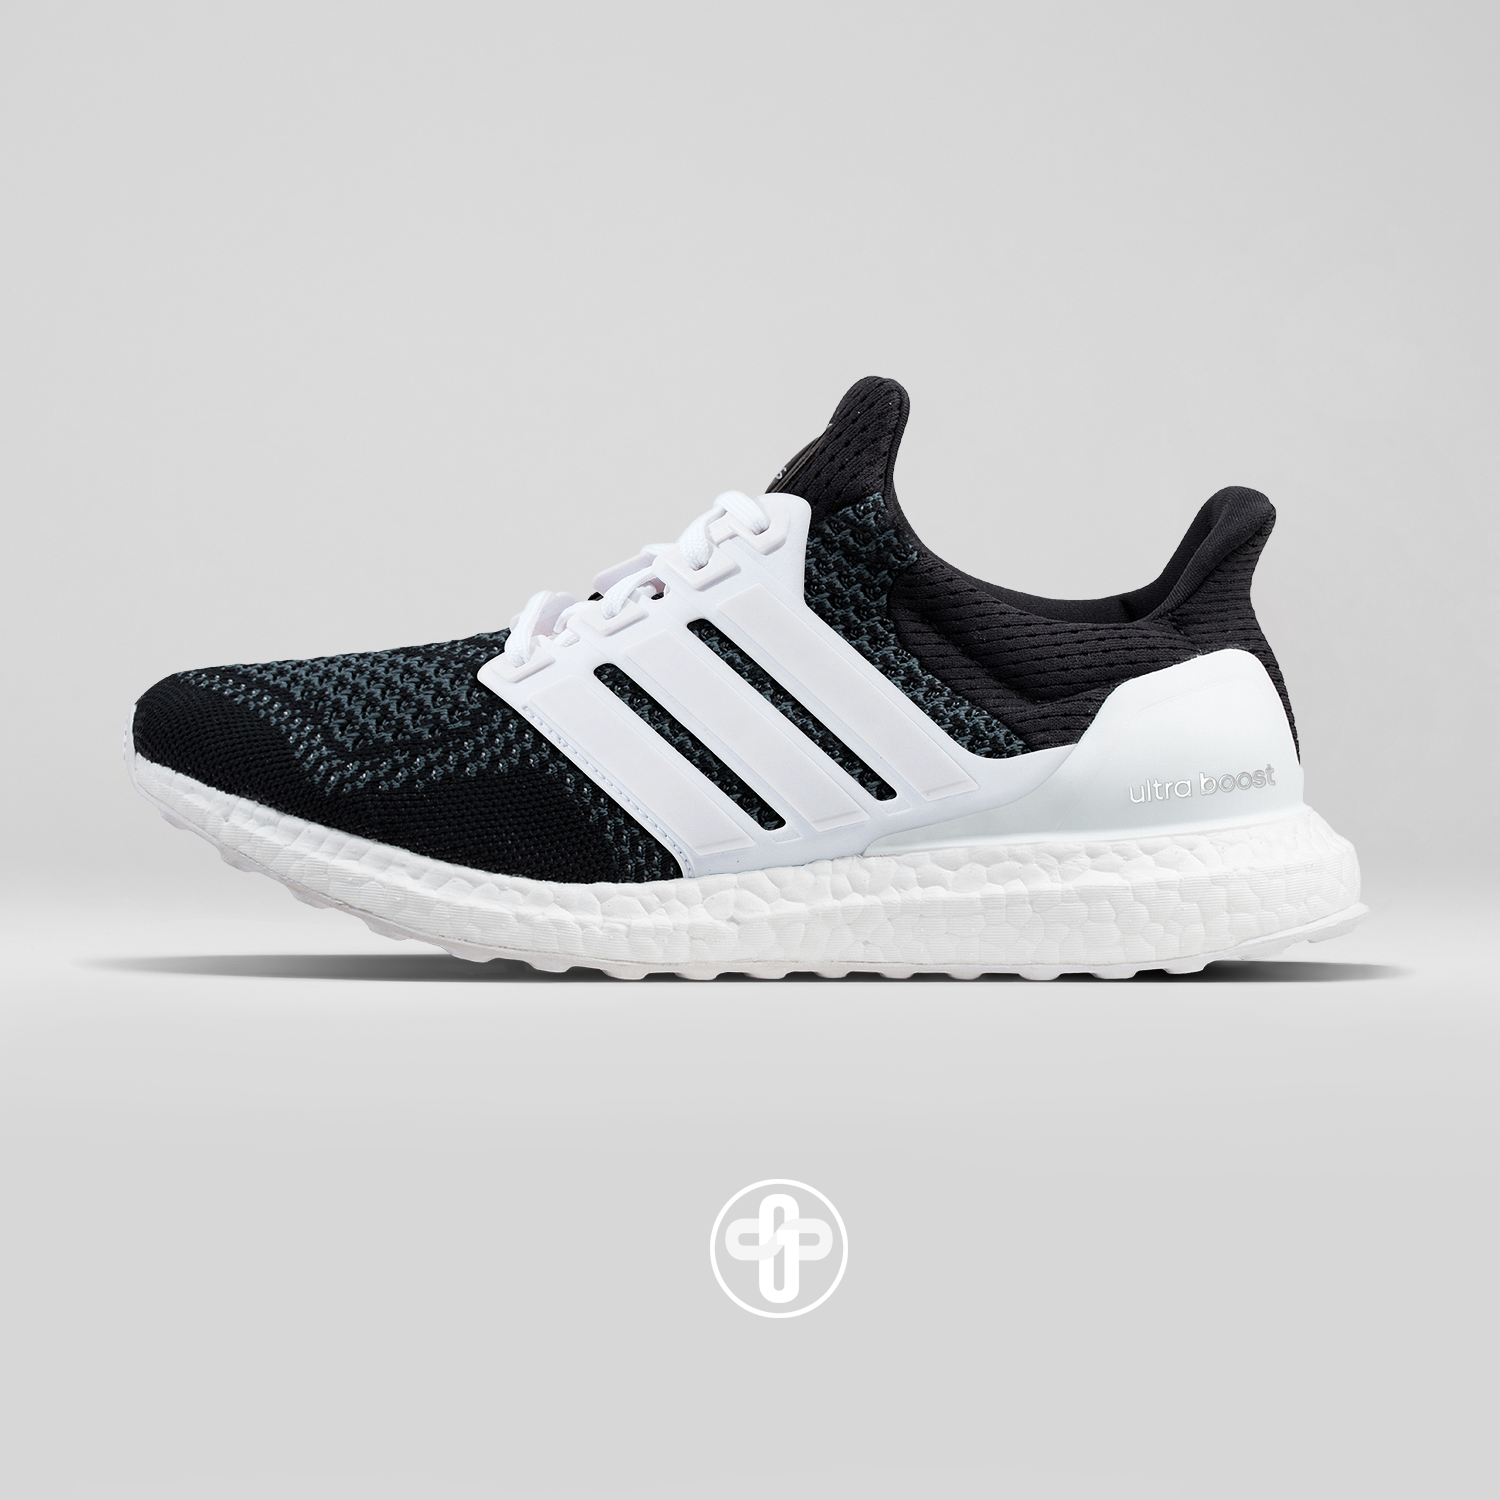 innovative design adeb6 22fc8 hypebeast x Adidas Ultra Boost Recaged White